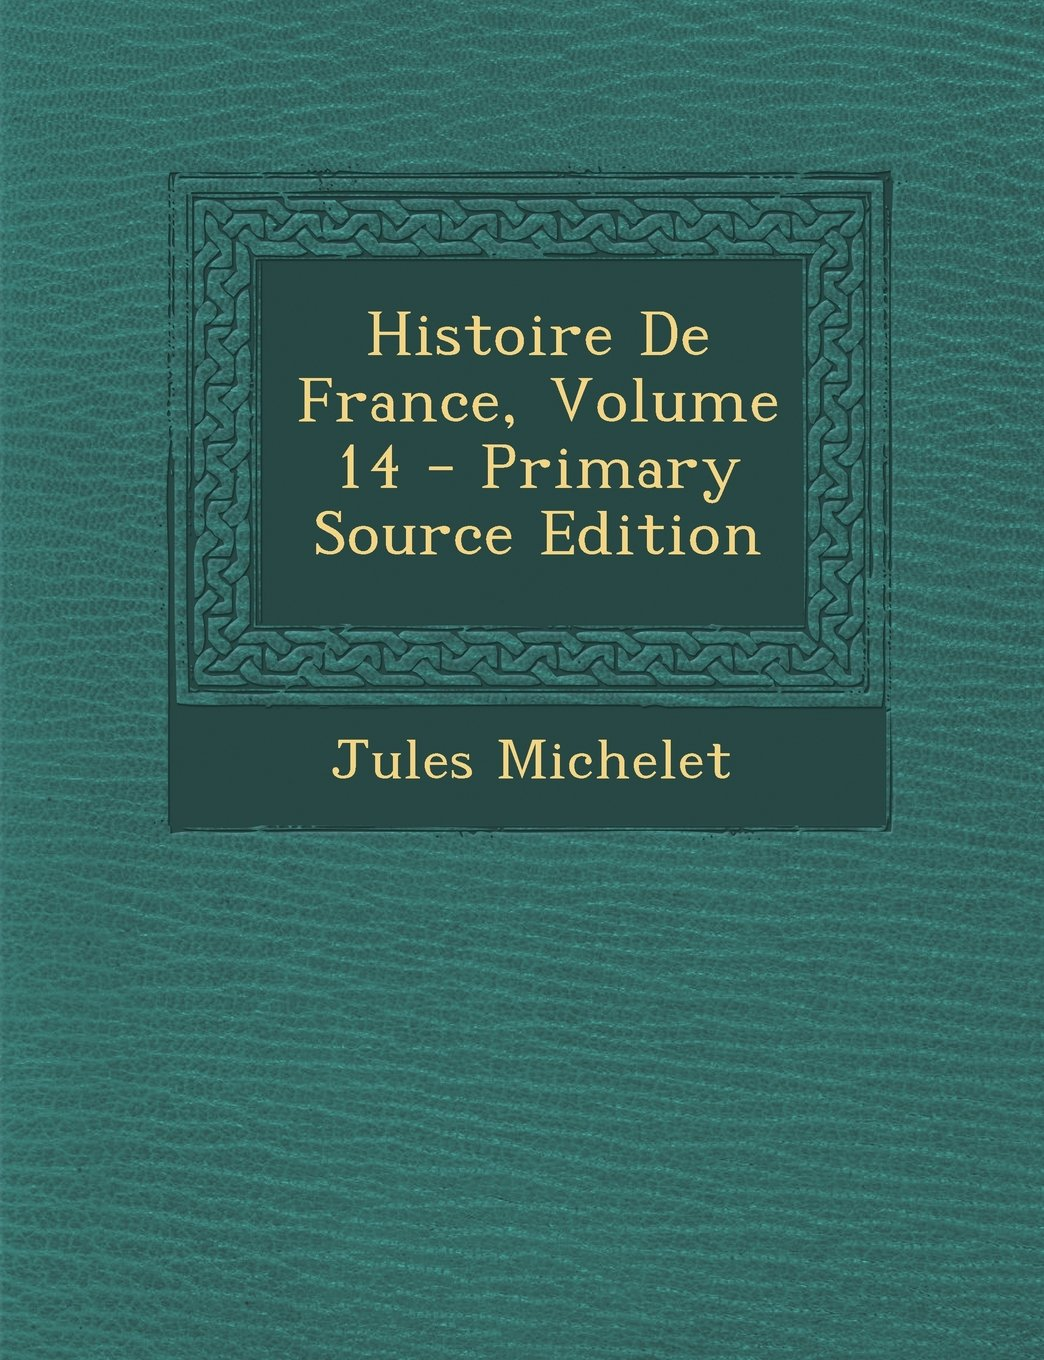 Read Online Histoire de France, Volume 14 - Primary Source Edition (French Edition) ebook